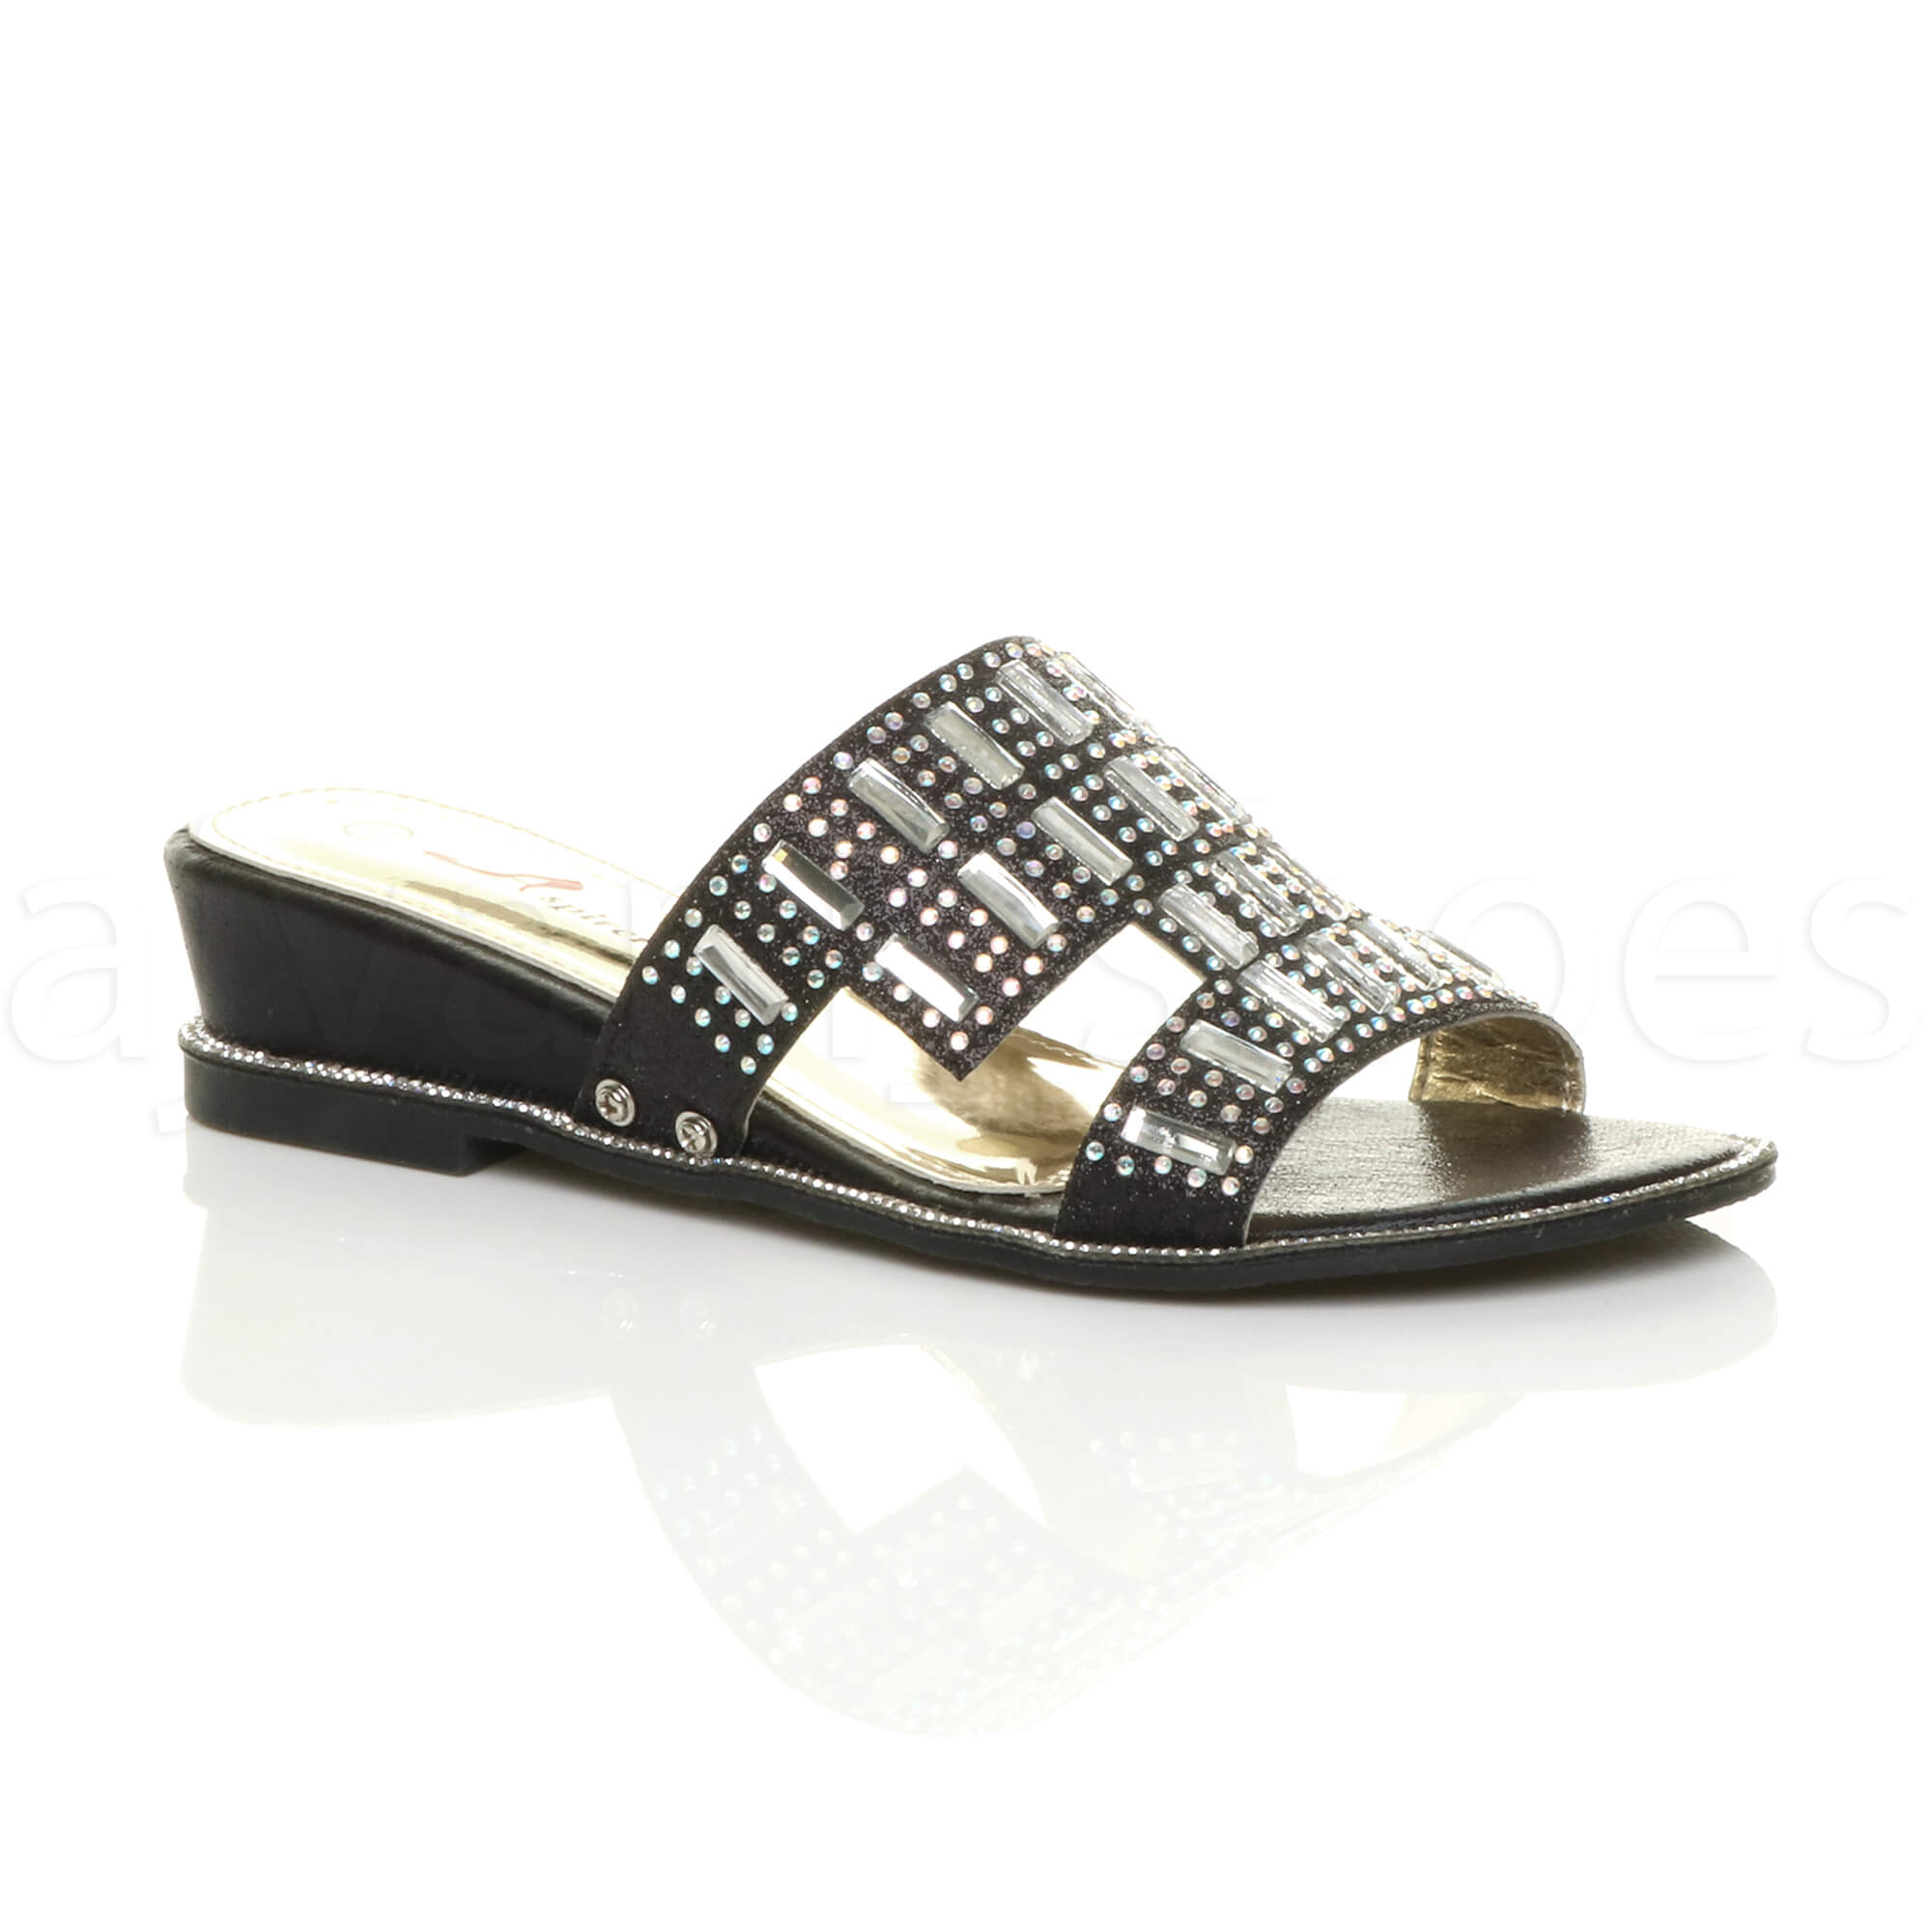 f65a2657db25 WOMENS LADIES LOW MID WEDGE HEEL DIAMANTE MULES SANDALS FLIP FLOPS ...